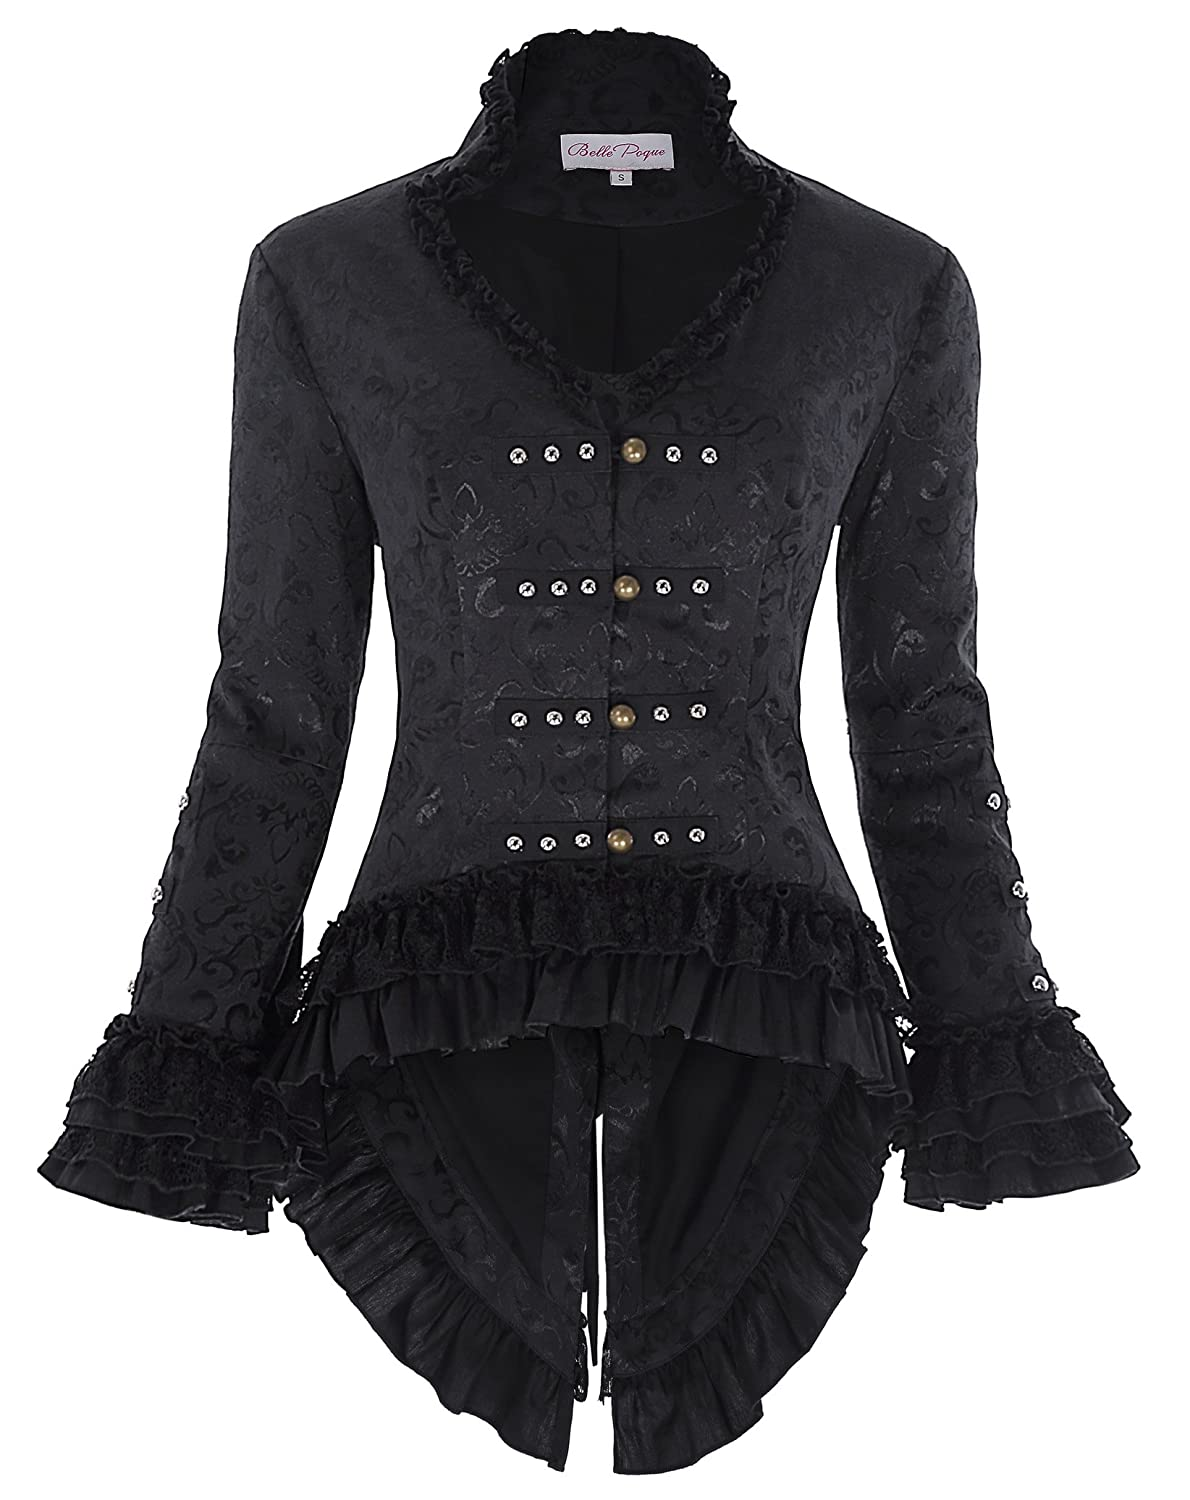 Women's Fancy Black Pirate Captain Gothic Tails Back Lacing Coat - DeluxeAdultCostumes.com